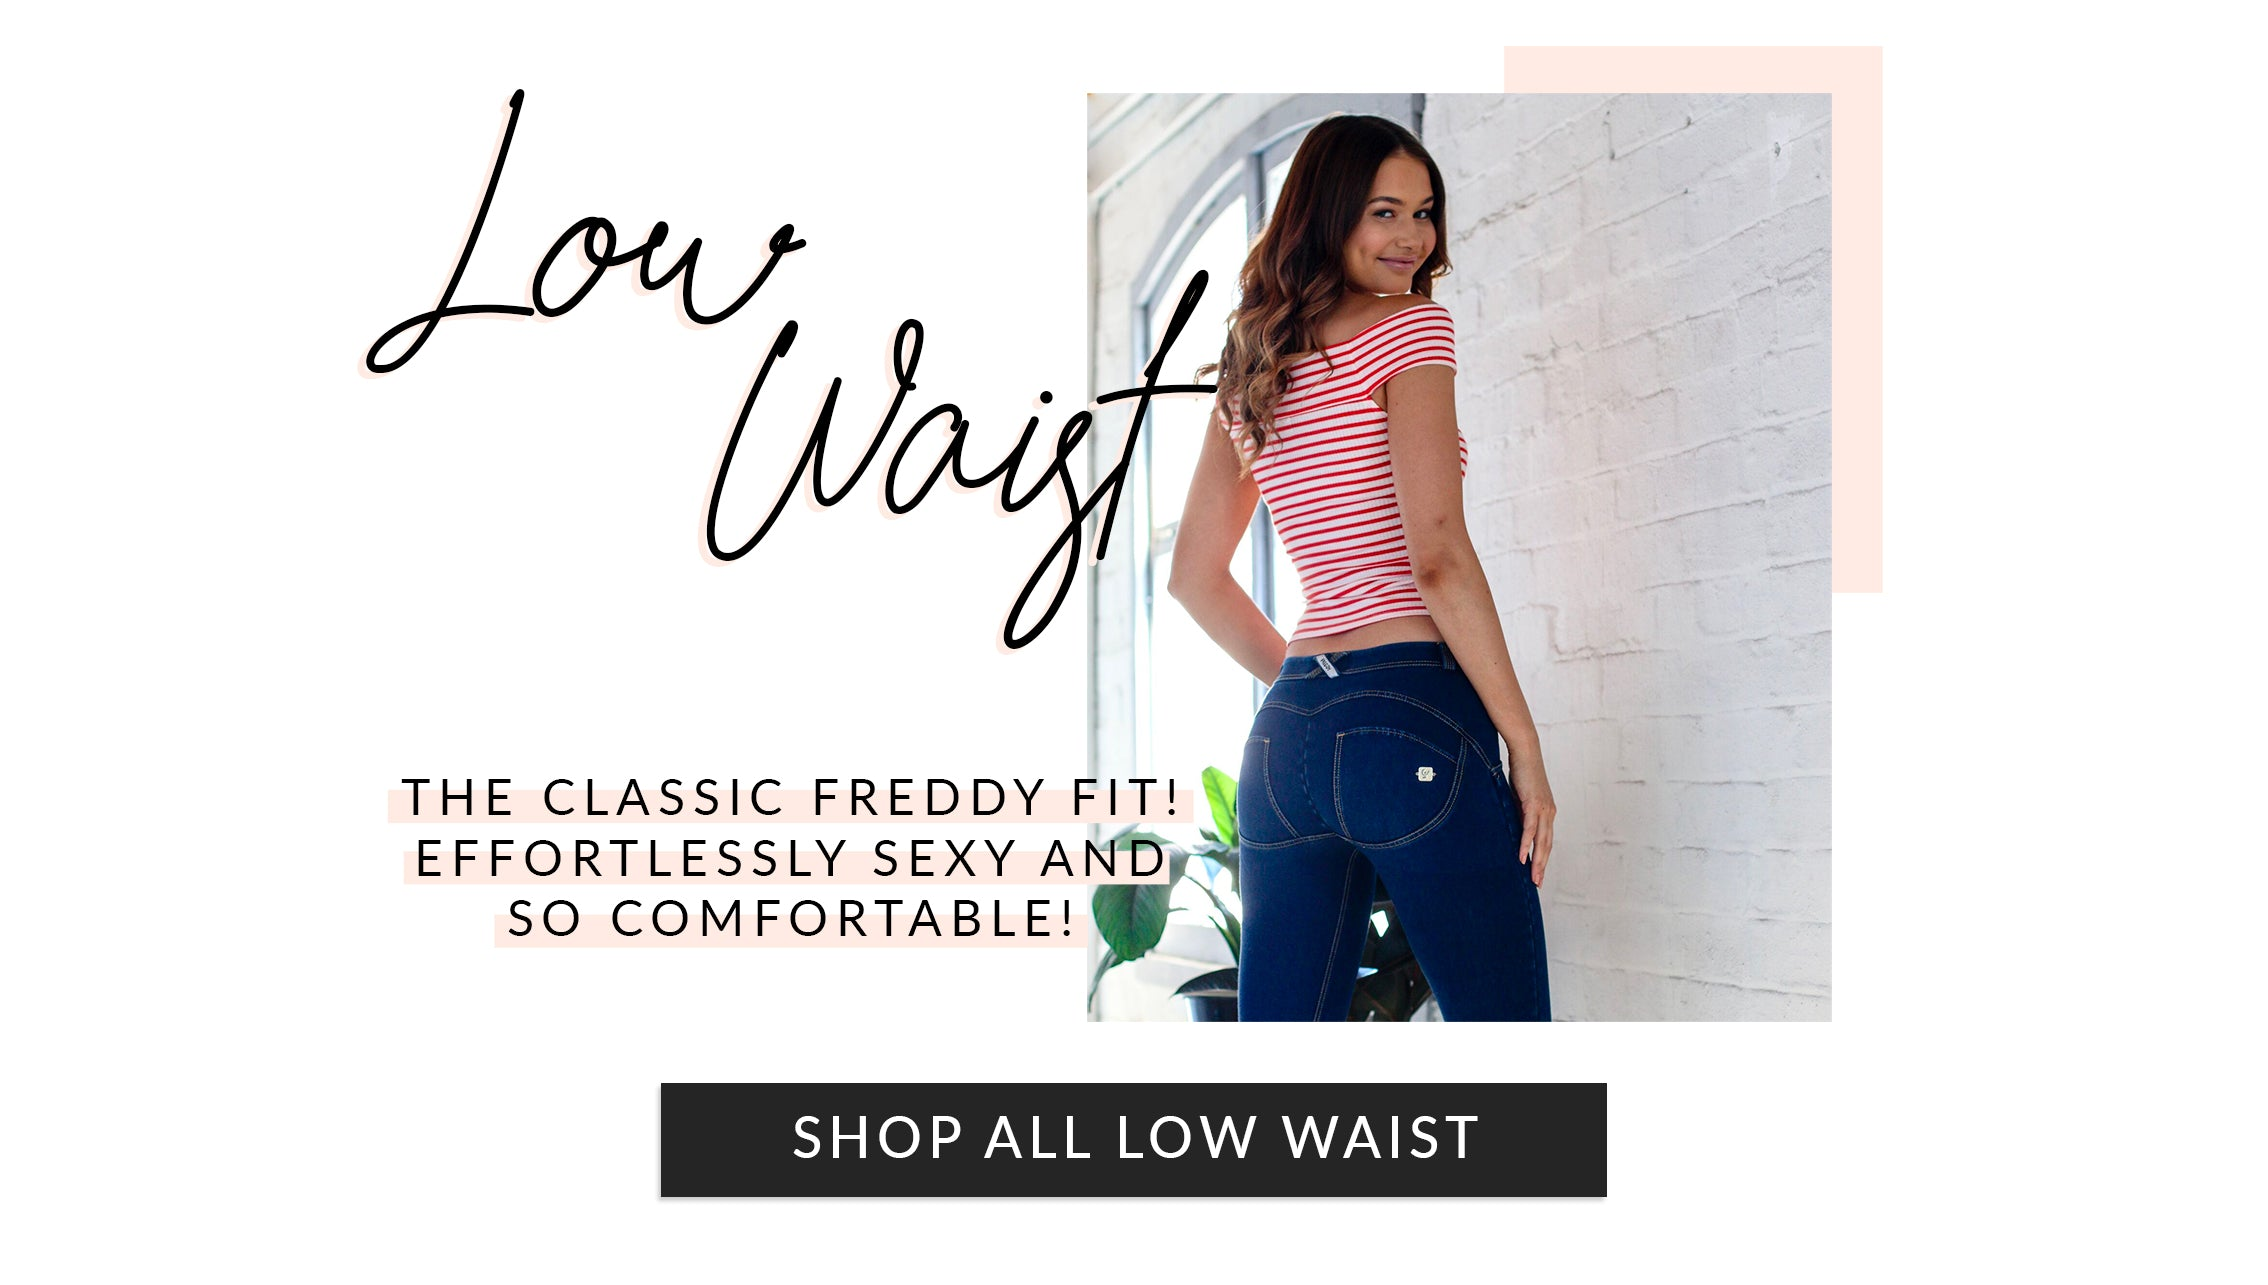 Shop all low waist